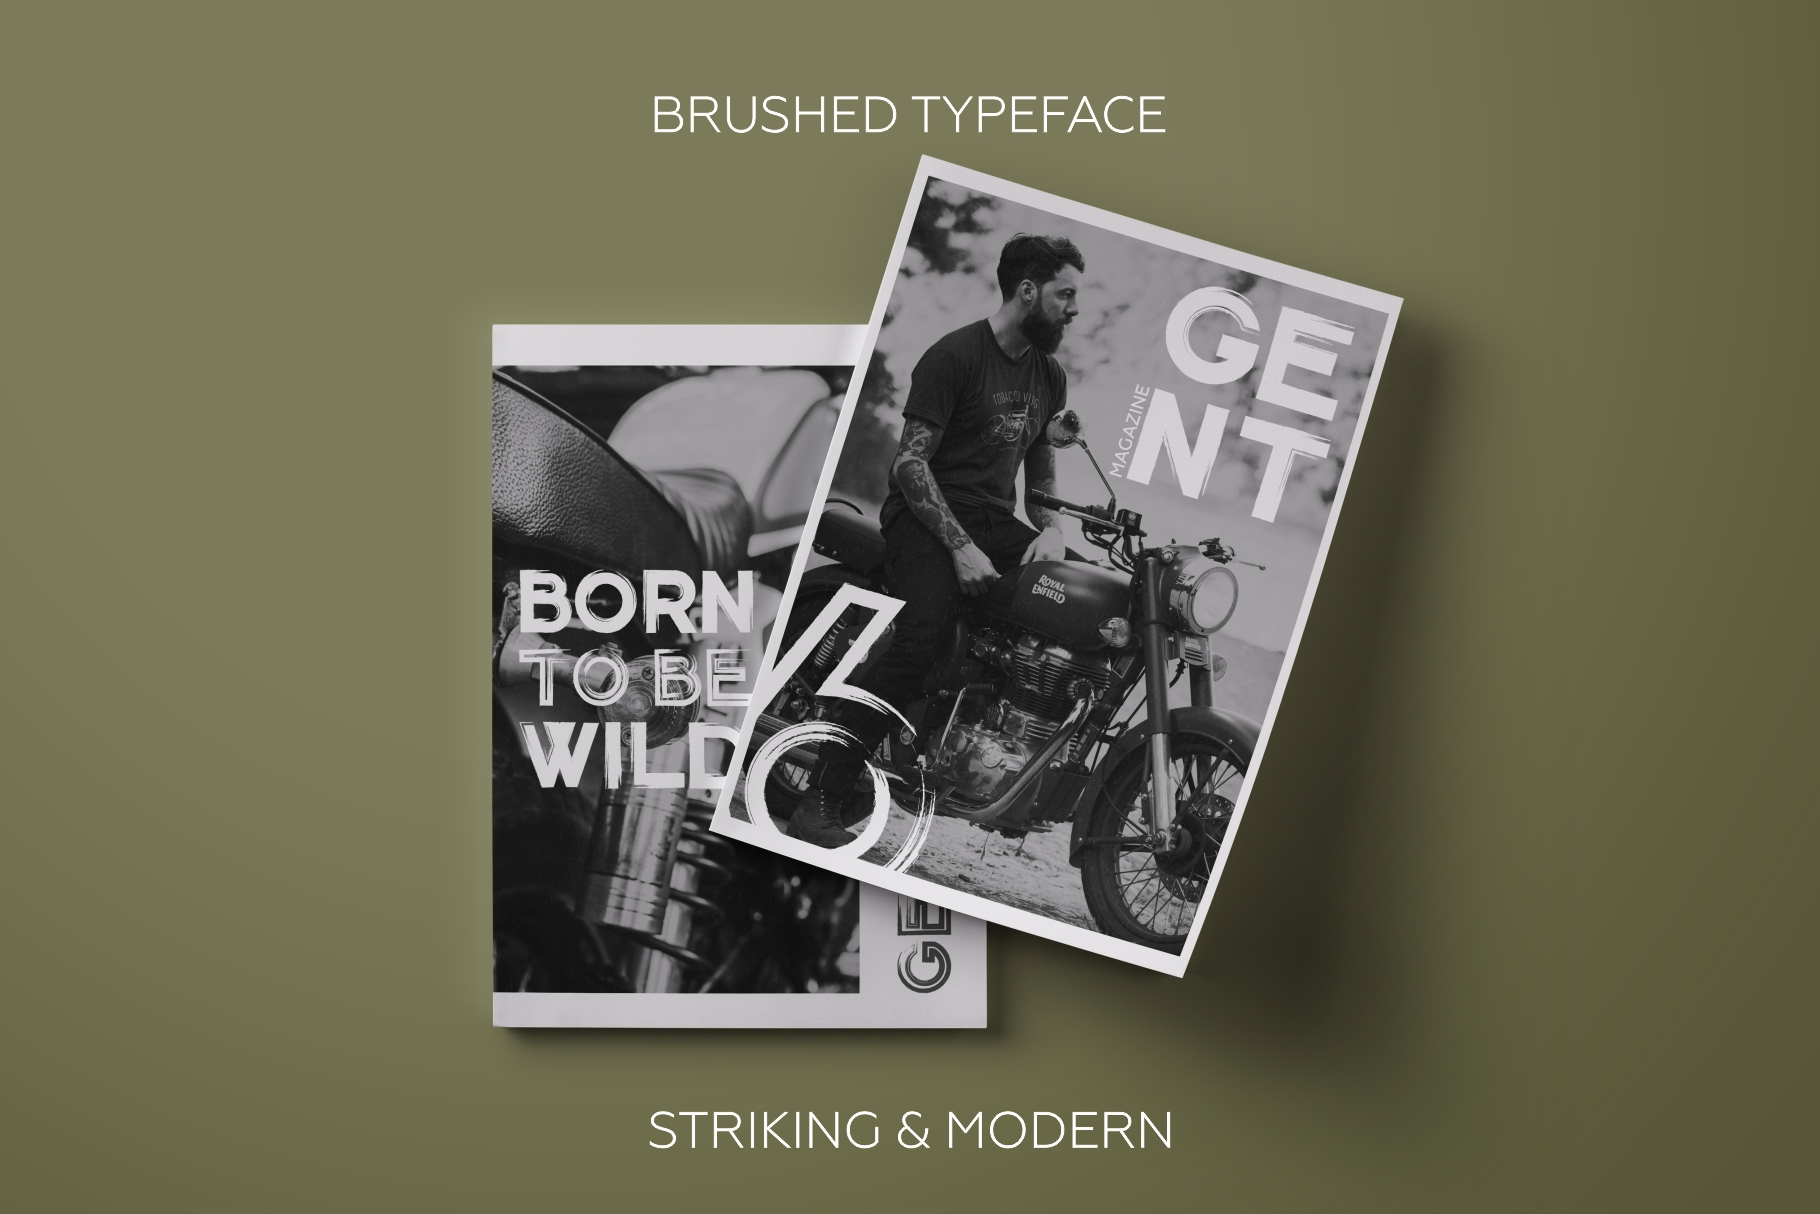 Gent. Display brushed typeface. Striking and modern. example image 5